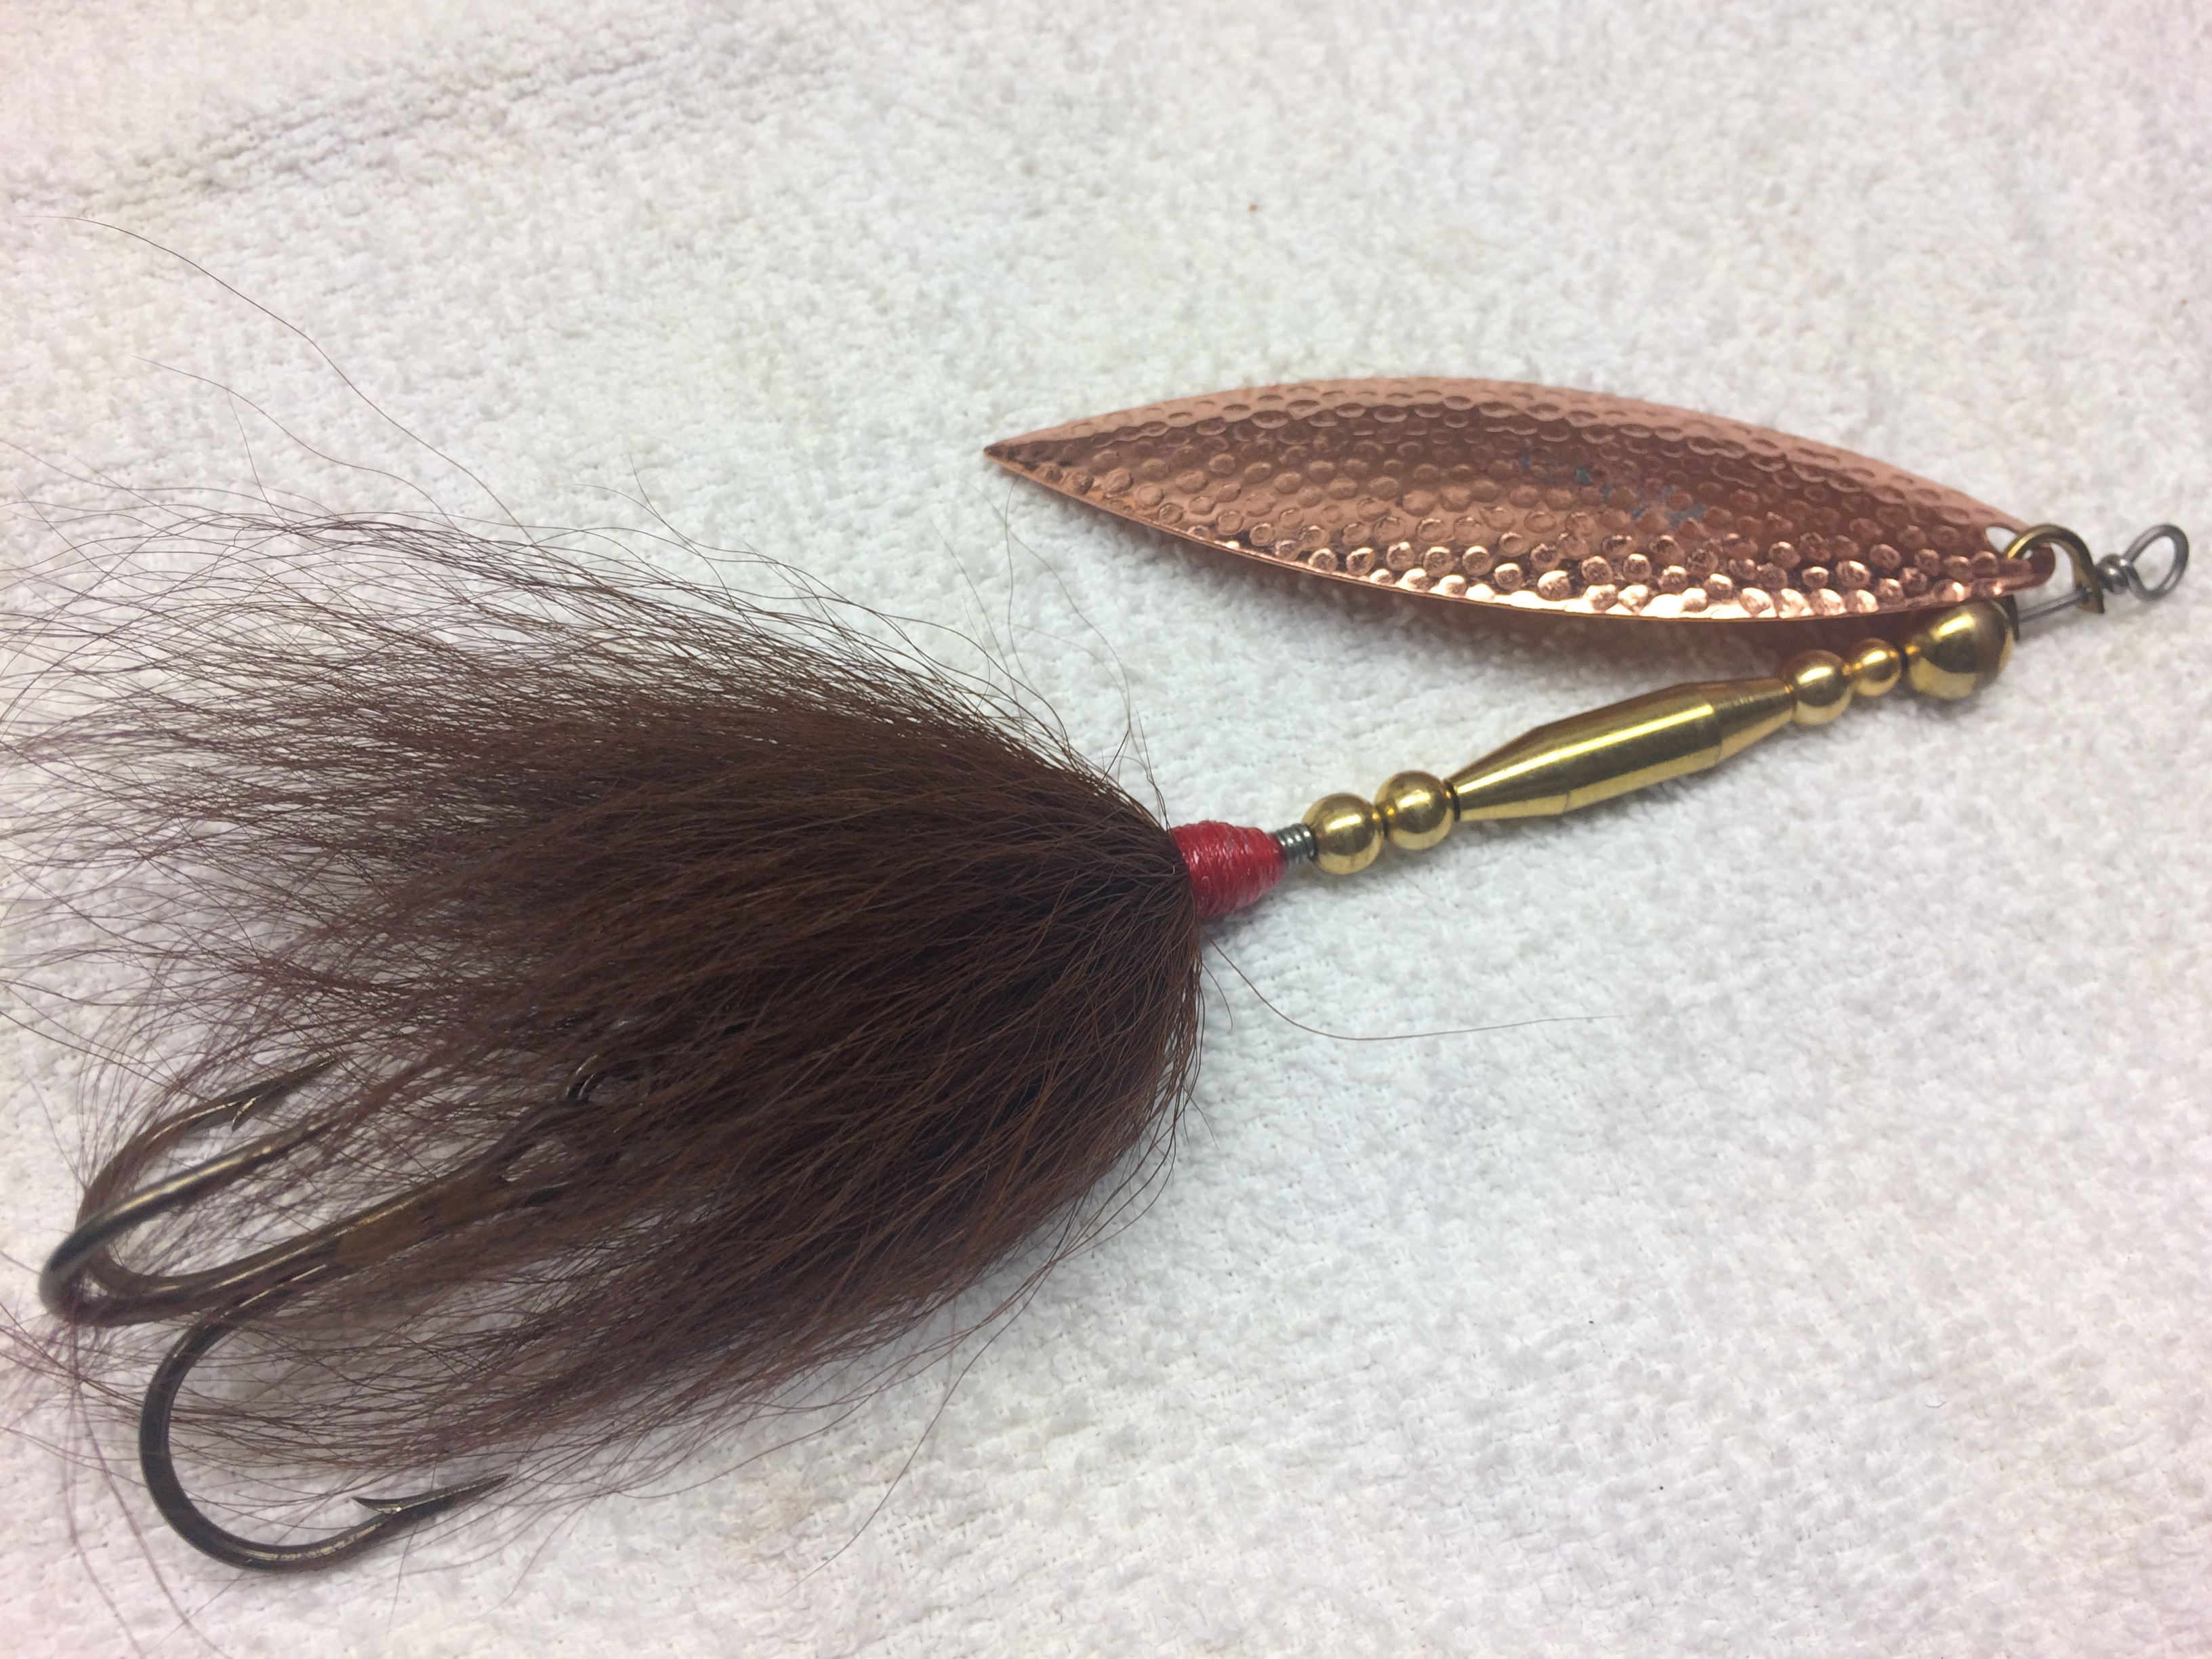 Photo of a bucktail